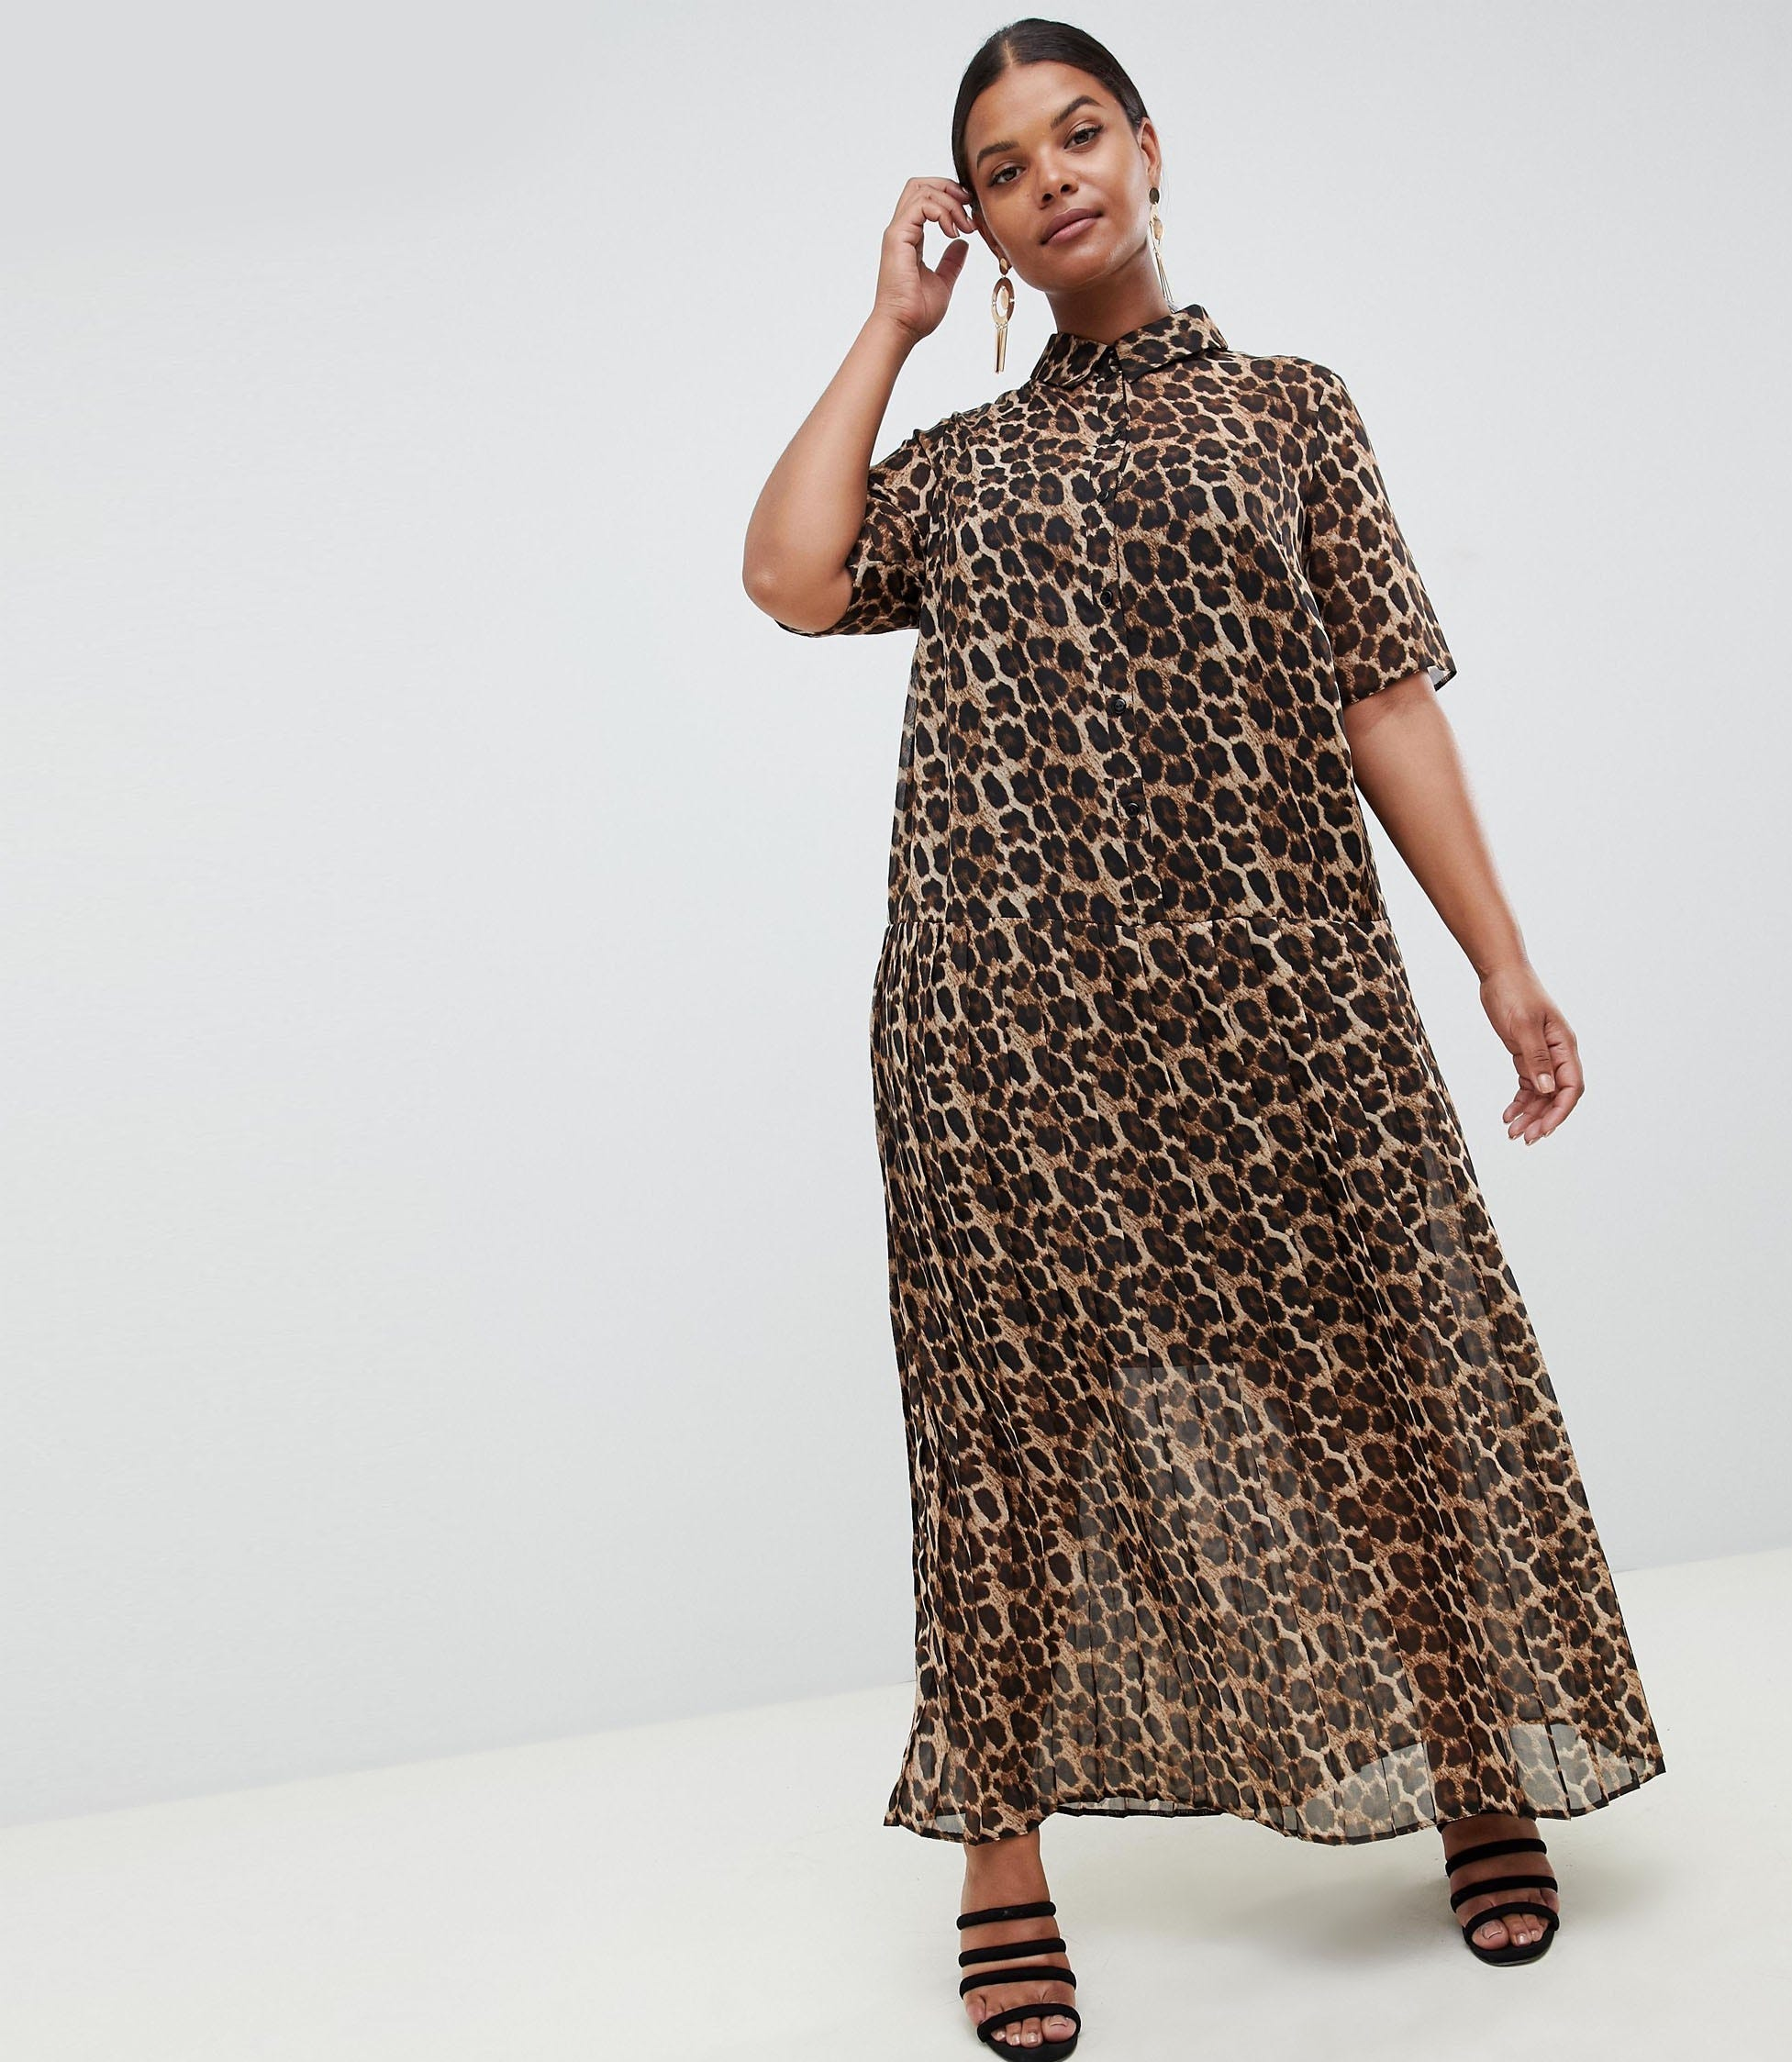 246526920d93 How To Wear Leopard Print, Huge Fall 2018 Fashion Trend